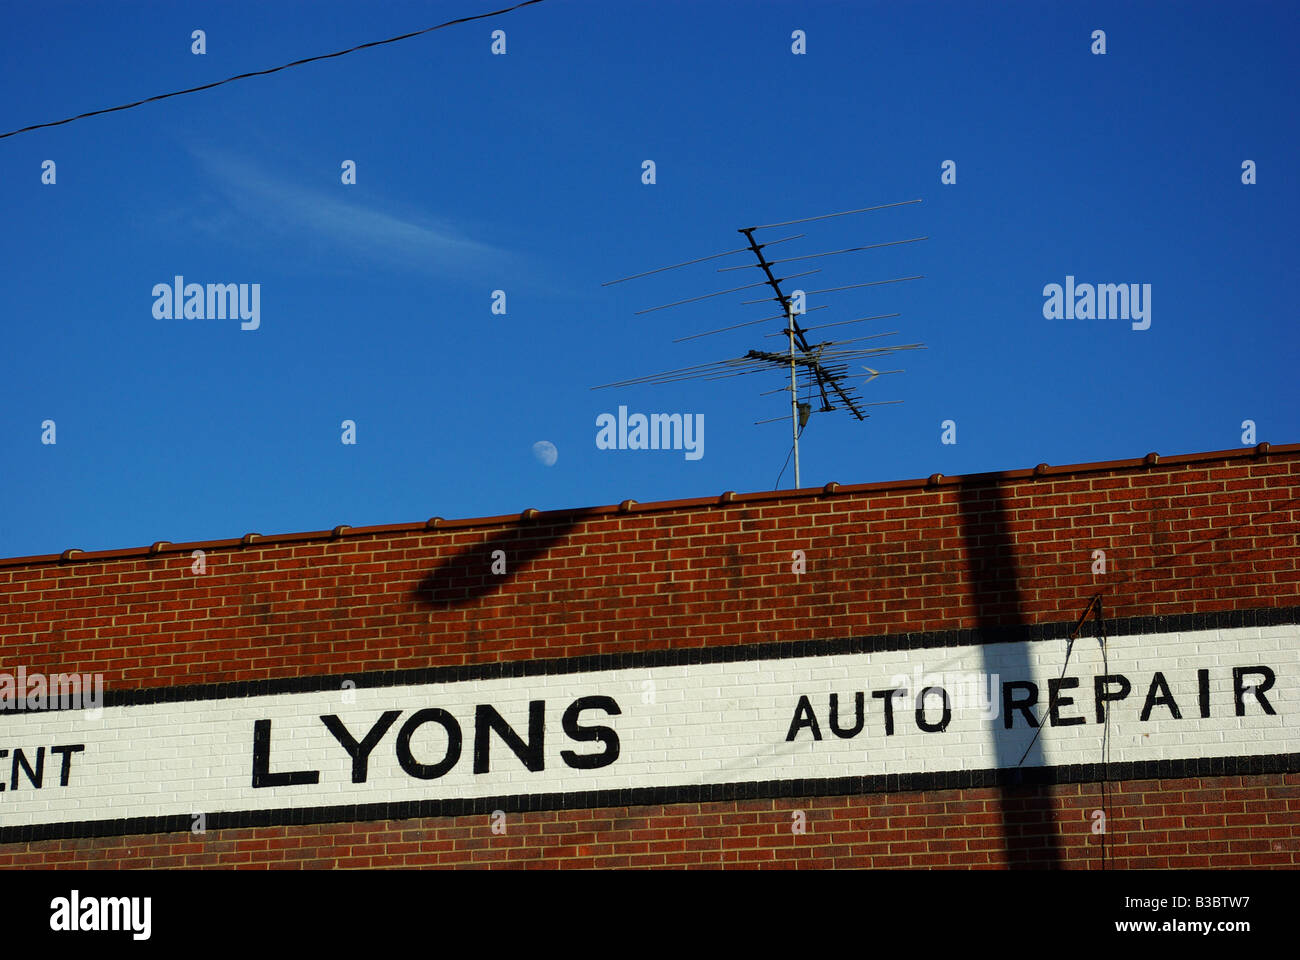 The moon is visible in the sky next to an old style television aerial on an abandoned mid 20th century auto shop. - Stock Image